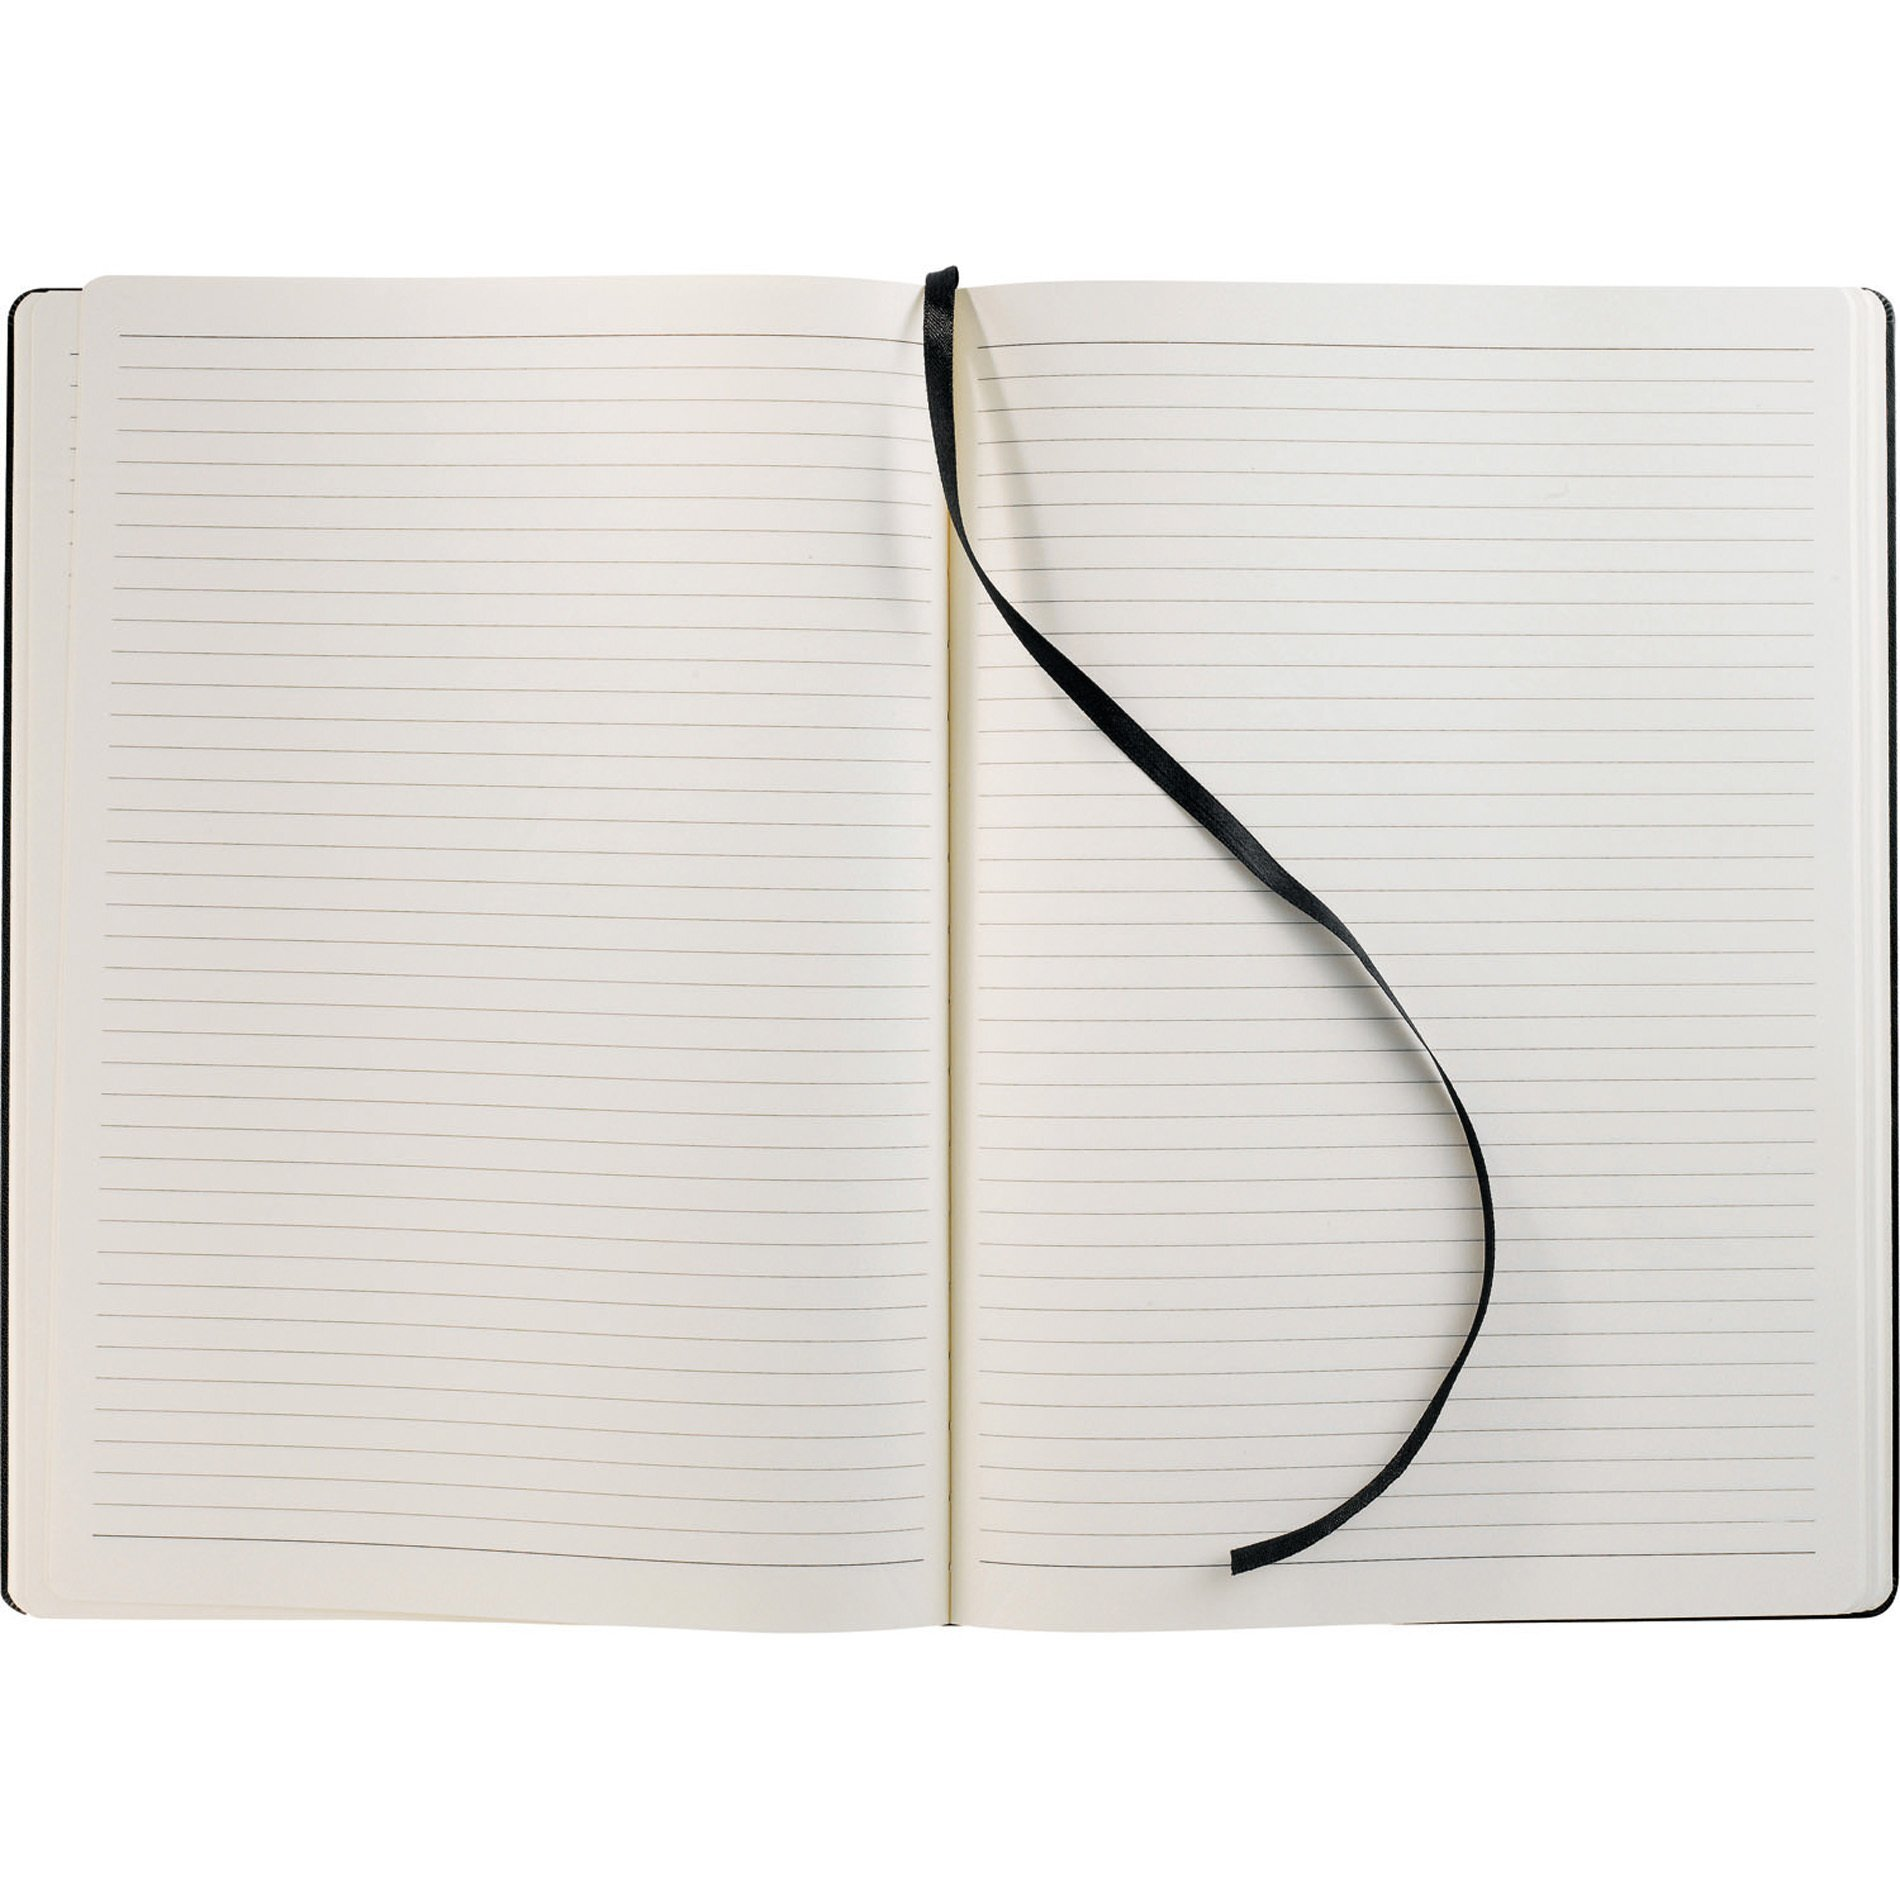 "Ambassador Large Bound JournalBook, 8-1/2"" x 11-3/4"""